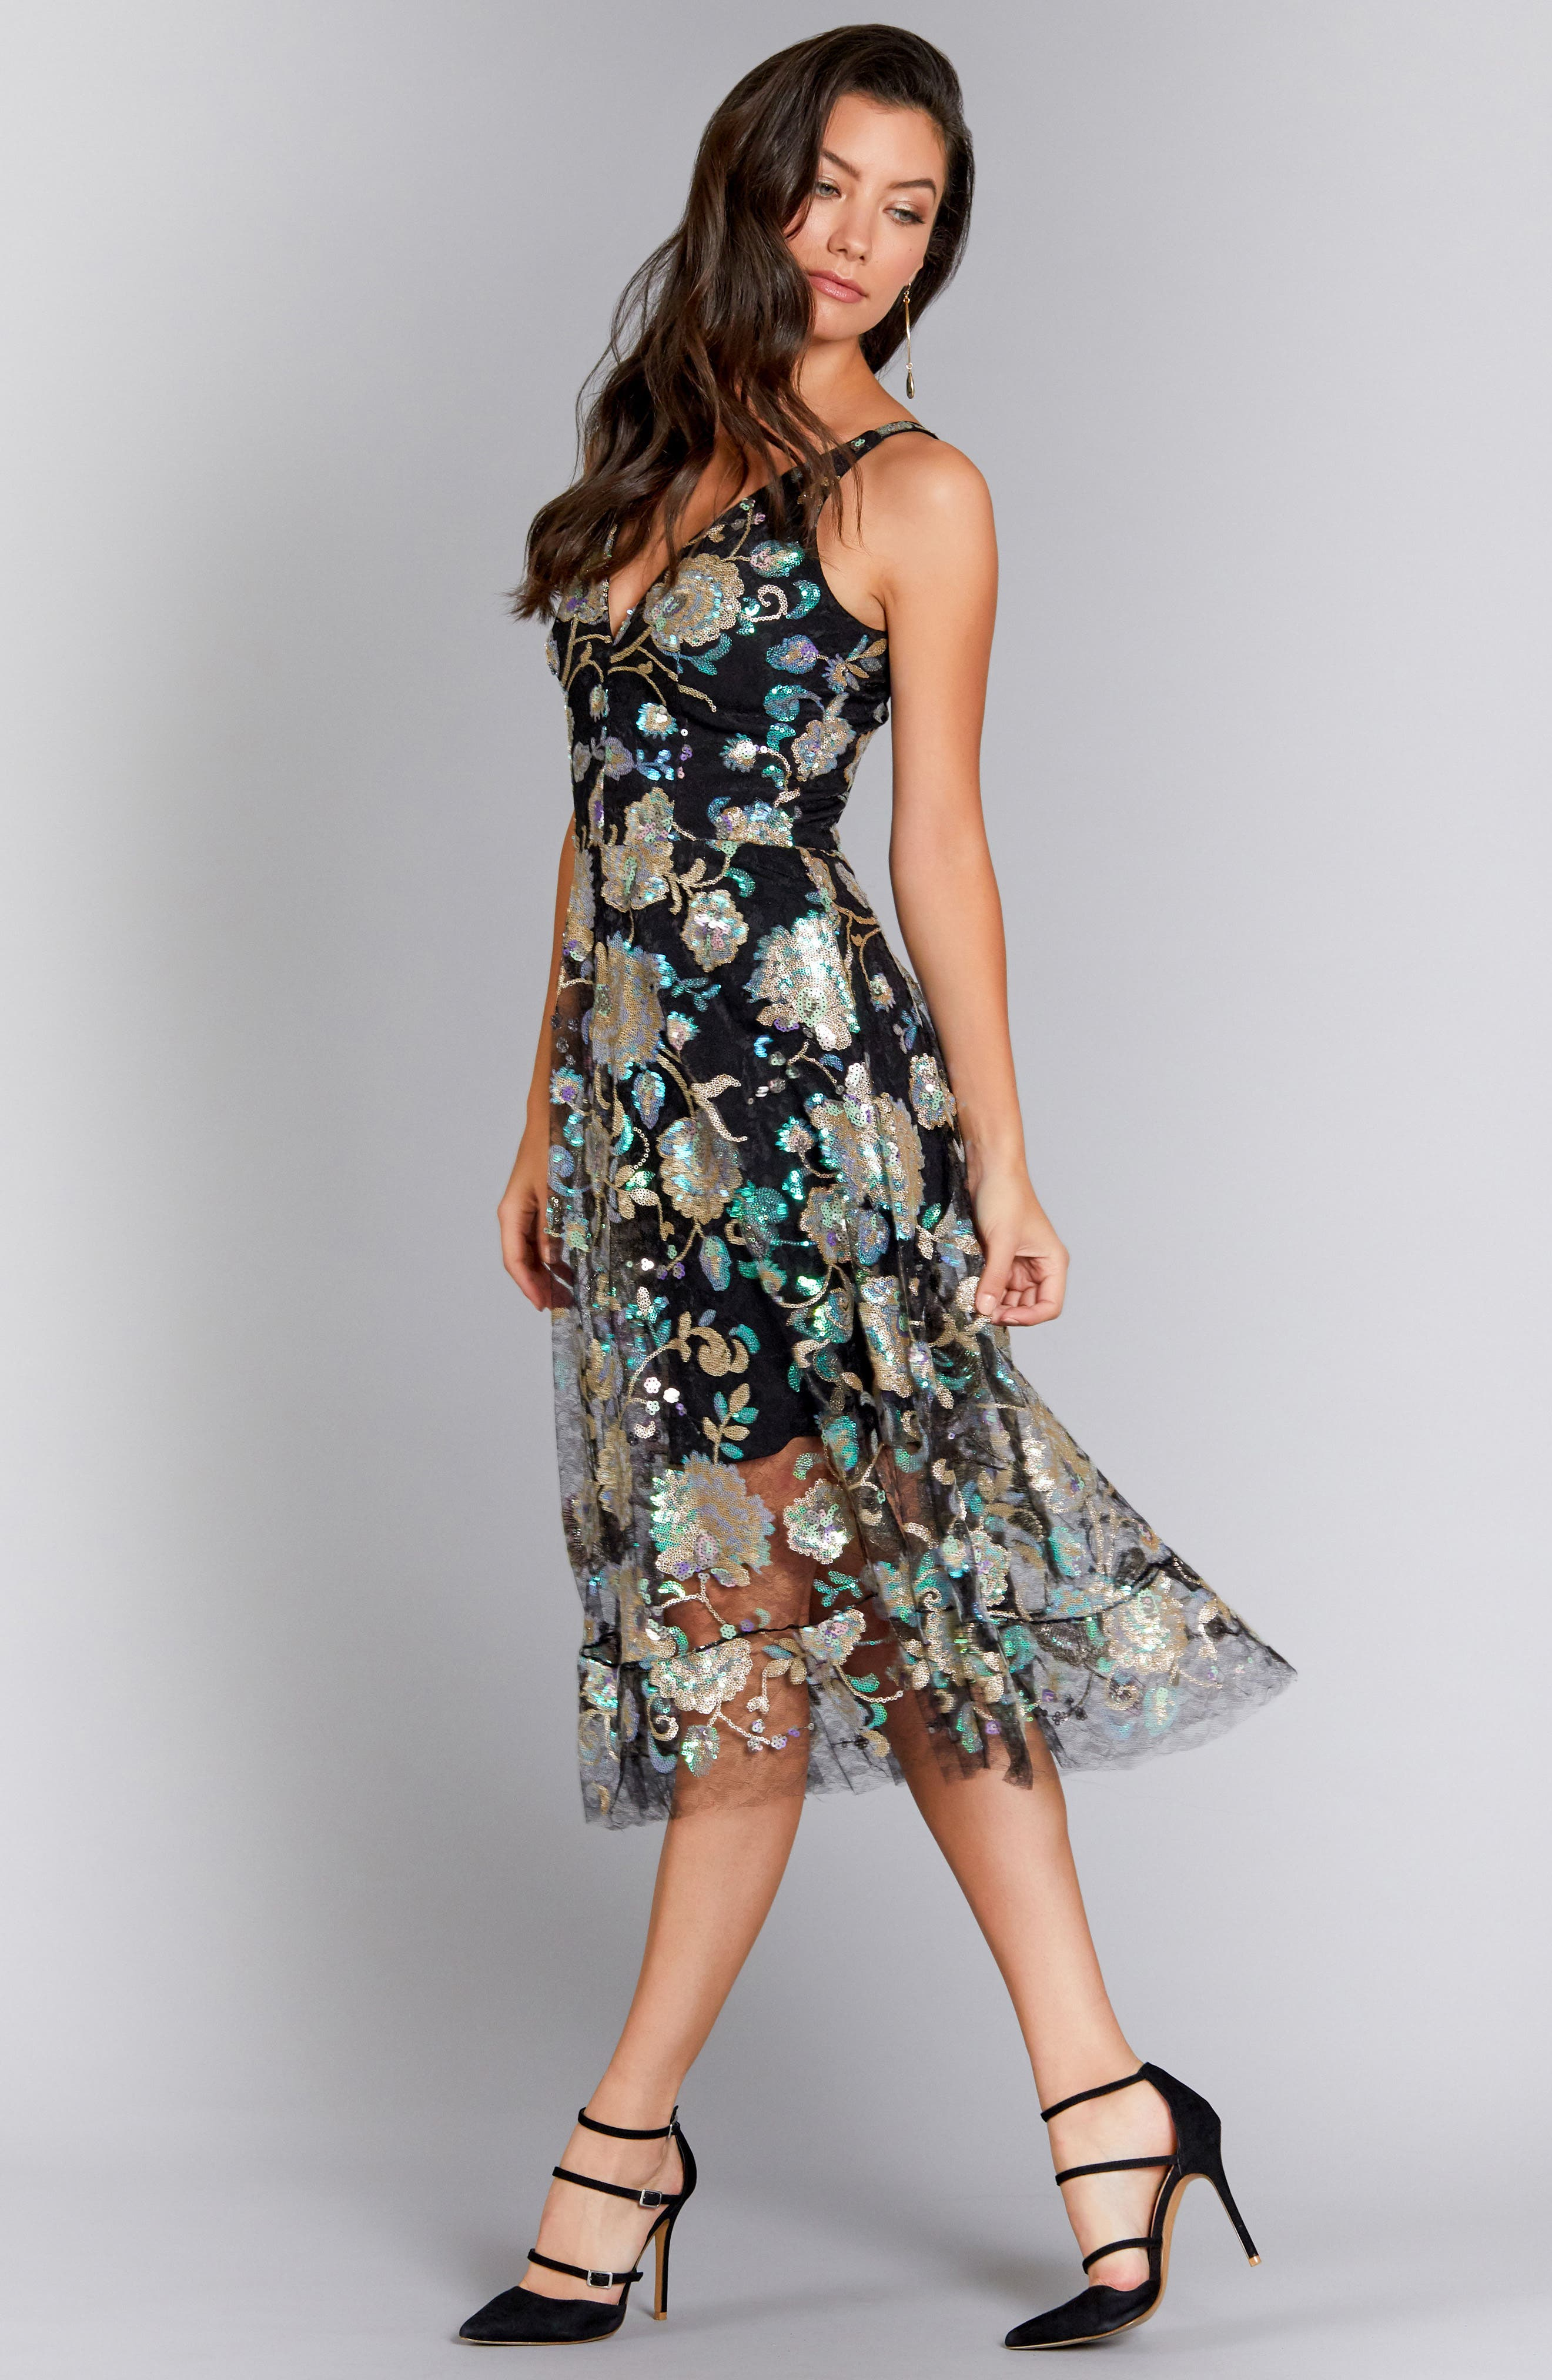 Audrey Sequin Embroidered Midi Dress,                             Alternate thumbnail 2, color,                             Black/ Iridescent Floral